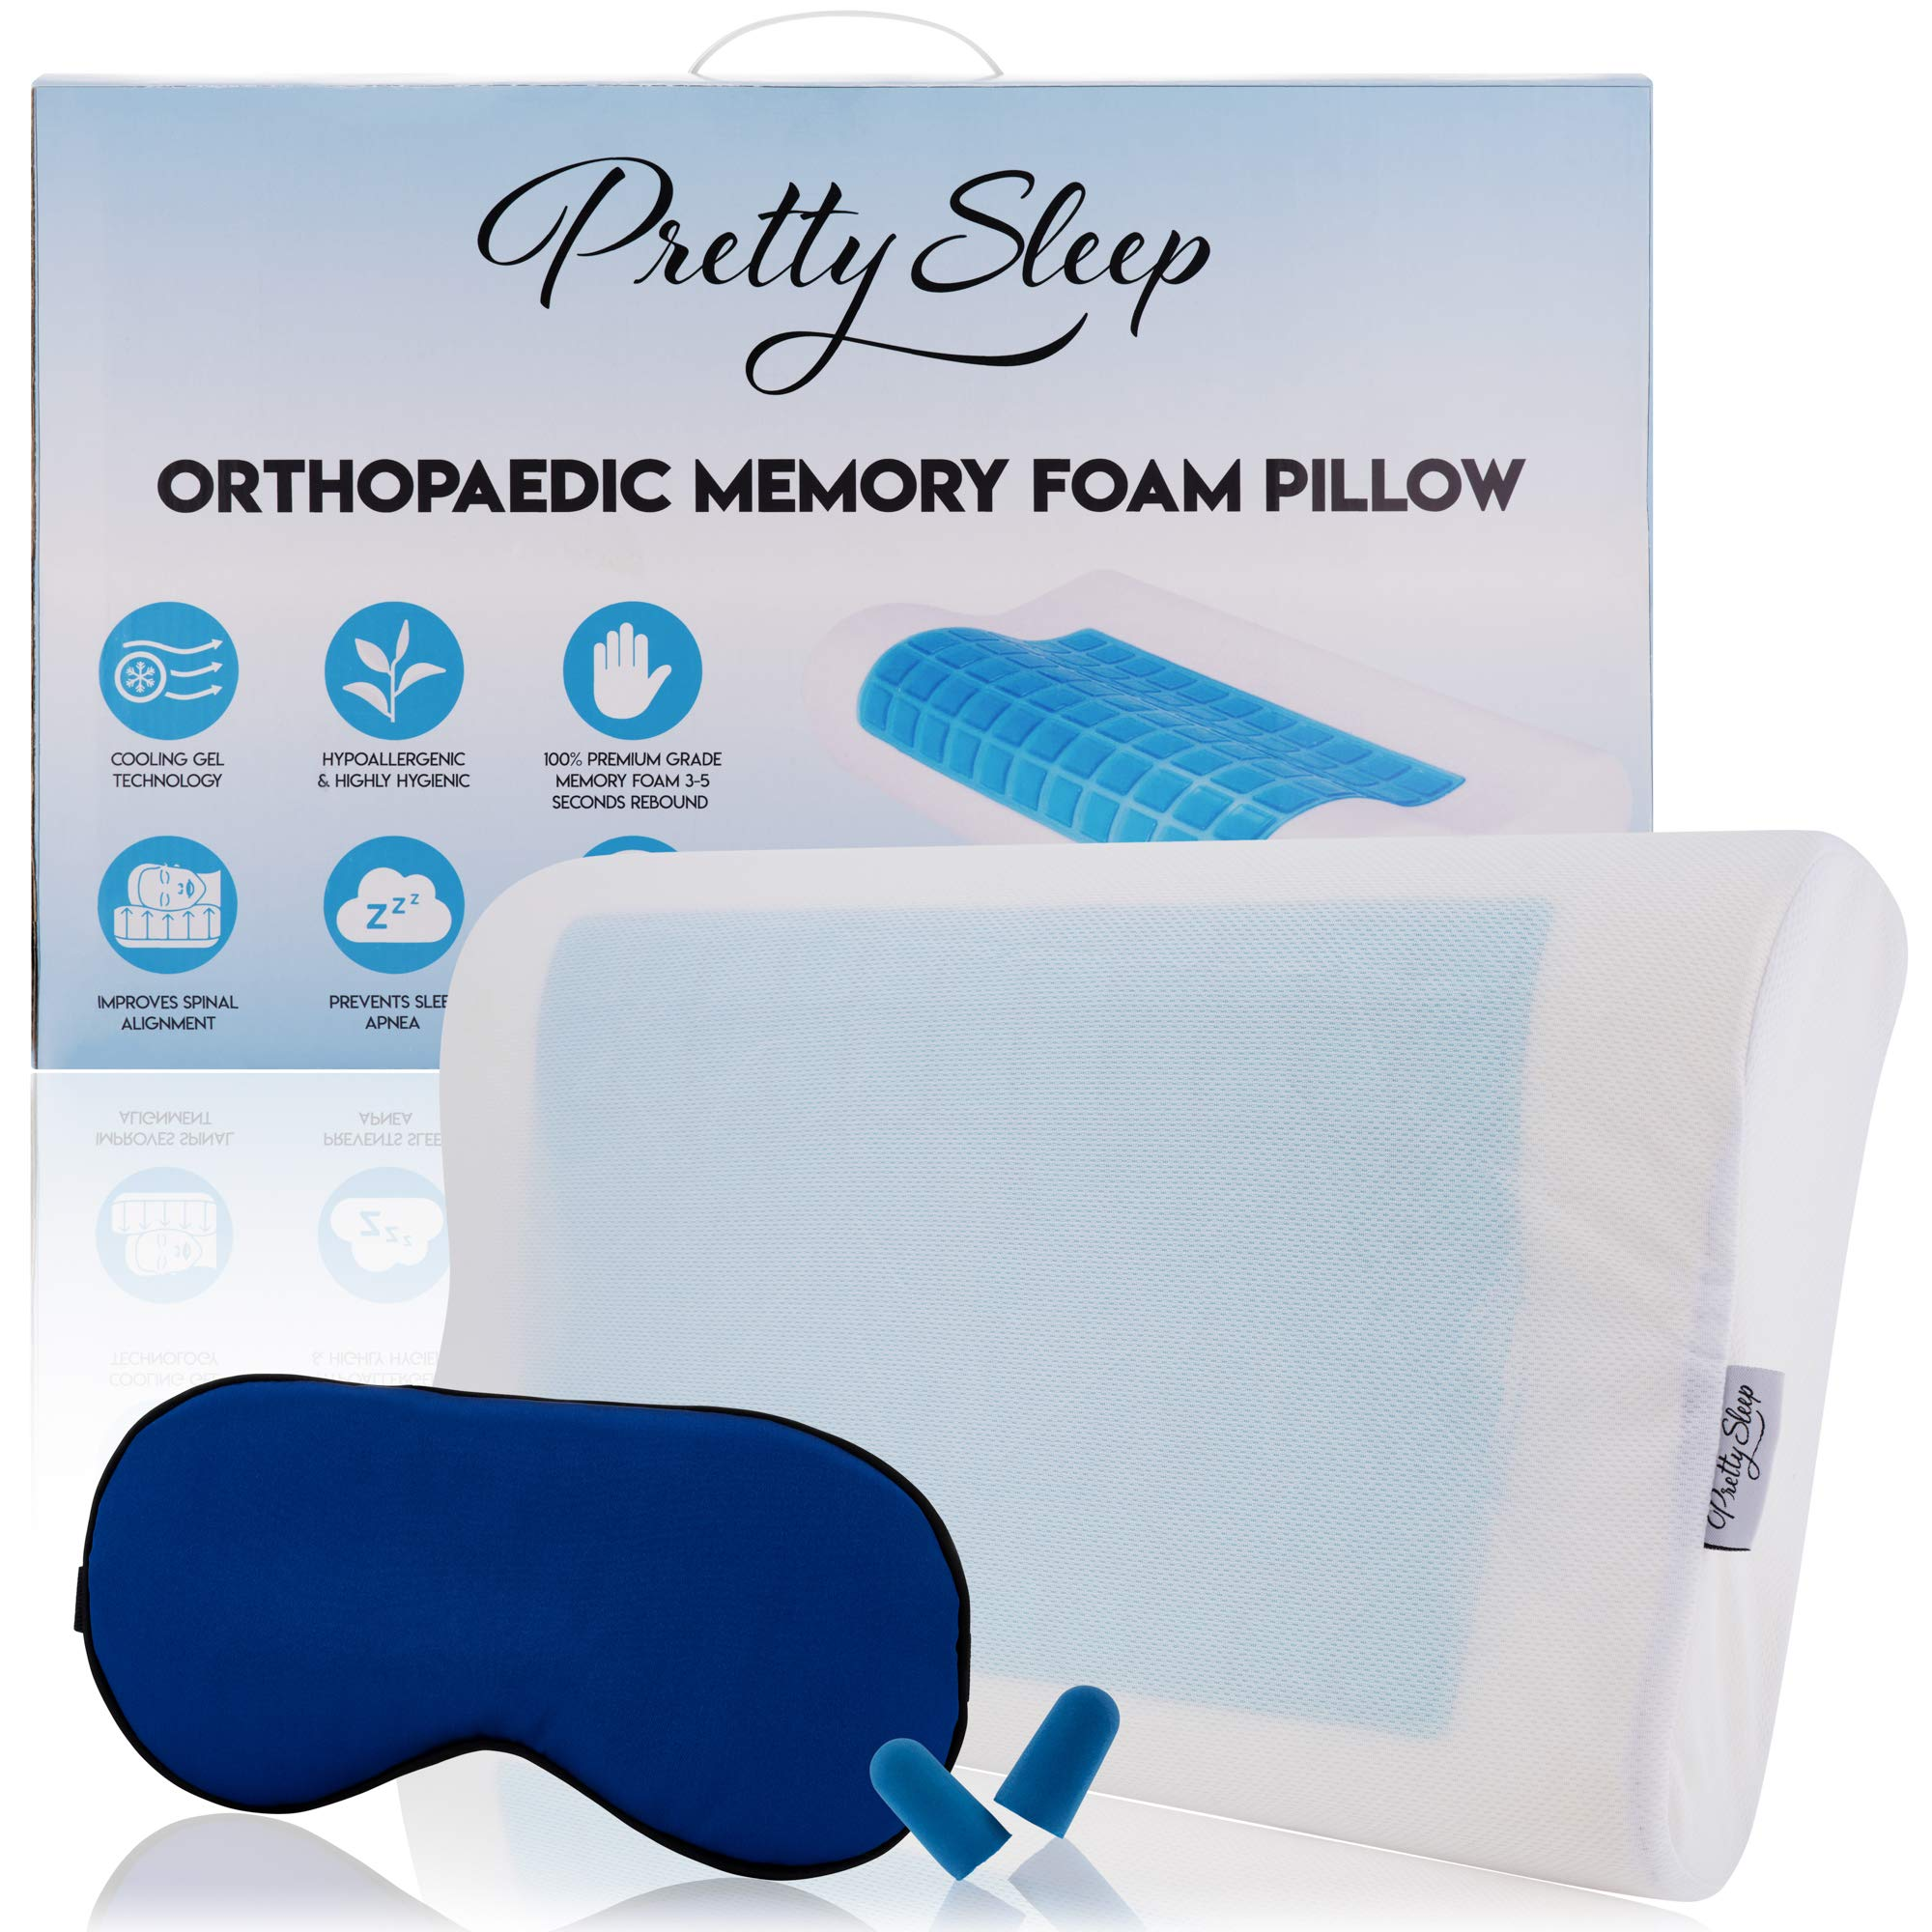 Pretty Sleep Orthopaedic Contour Memory Foam Pillow Heat Dissipating For Neck Pain & Shoulder Support | Unique Design, Soft Supportive, Washable